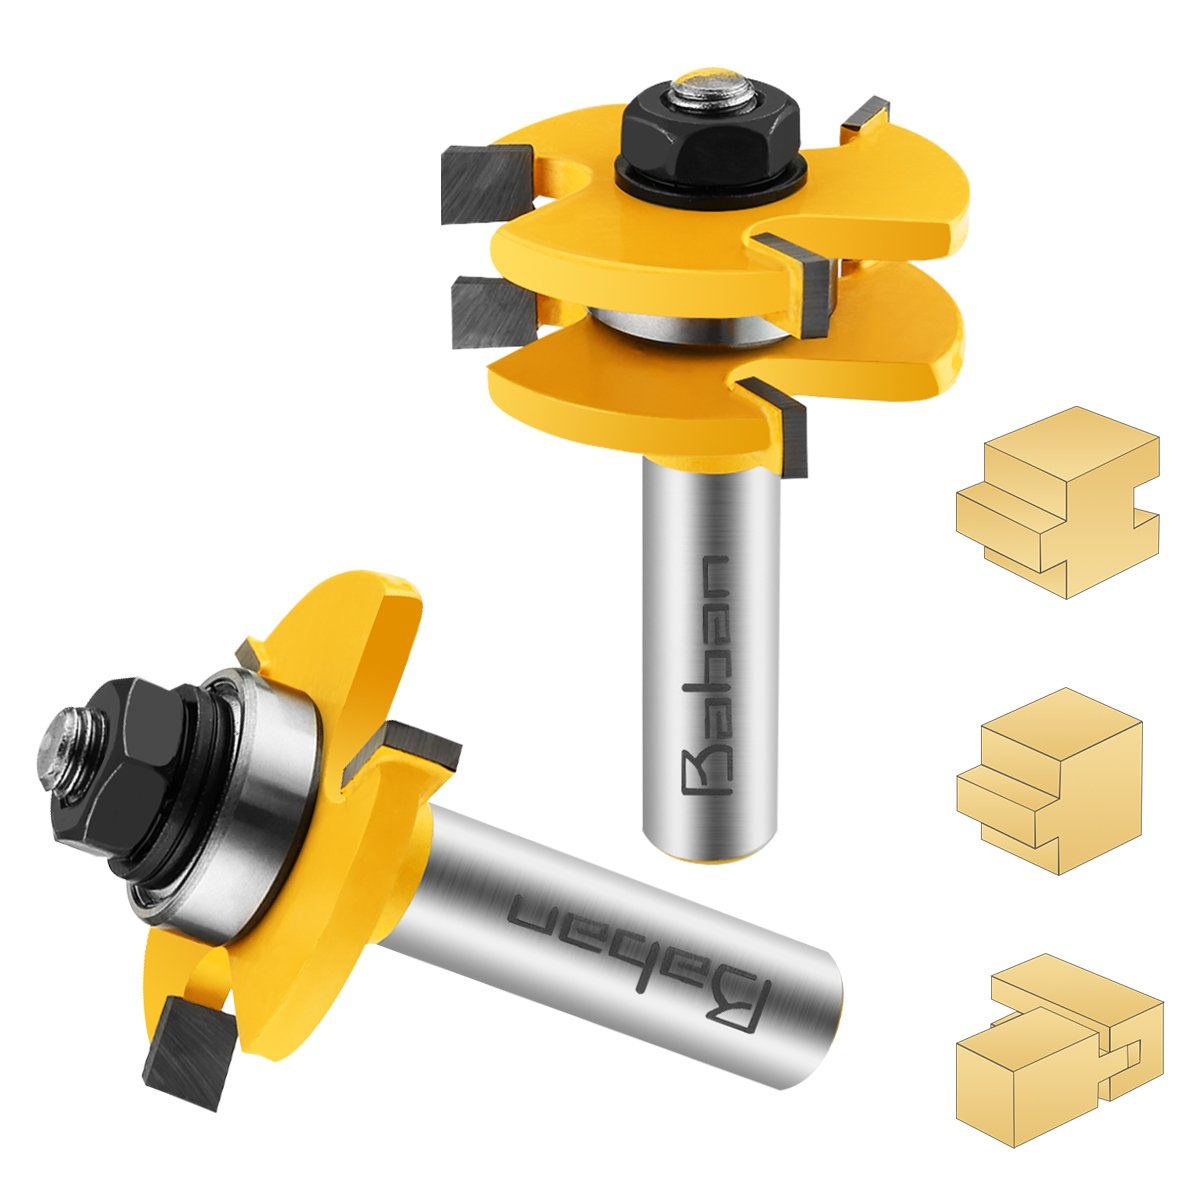 Tongue and Groove Set, 1/2 Inch Shank Router Bit Set Wood Door Flooring 3 Teeth Adjustable T Shape Wood Milling Cutter Woodworking Tool For Router Table/Base Router, Kitchen/Bathroom/Cabinets